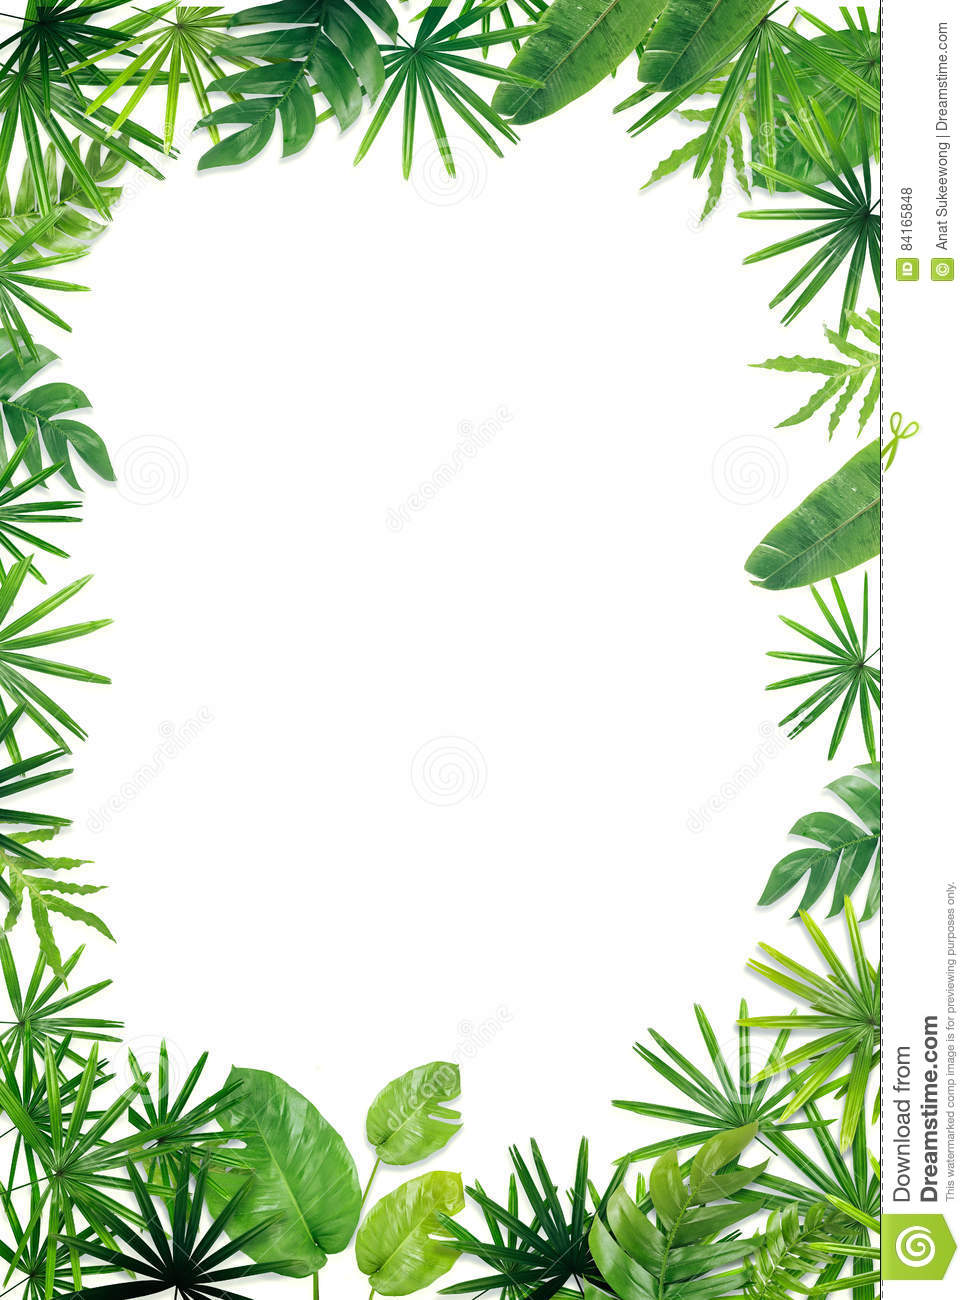 green leaf border background stock photo